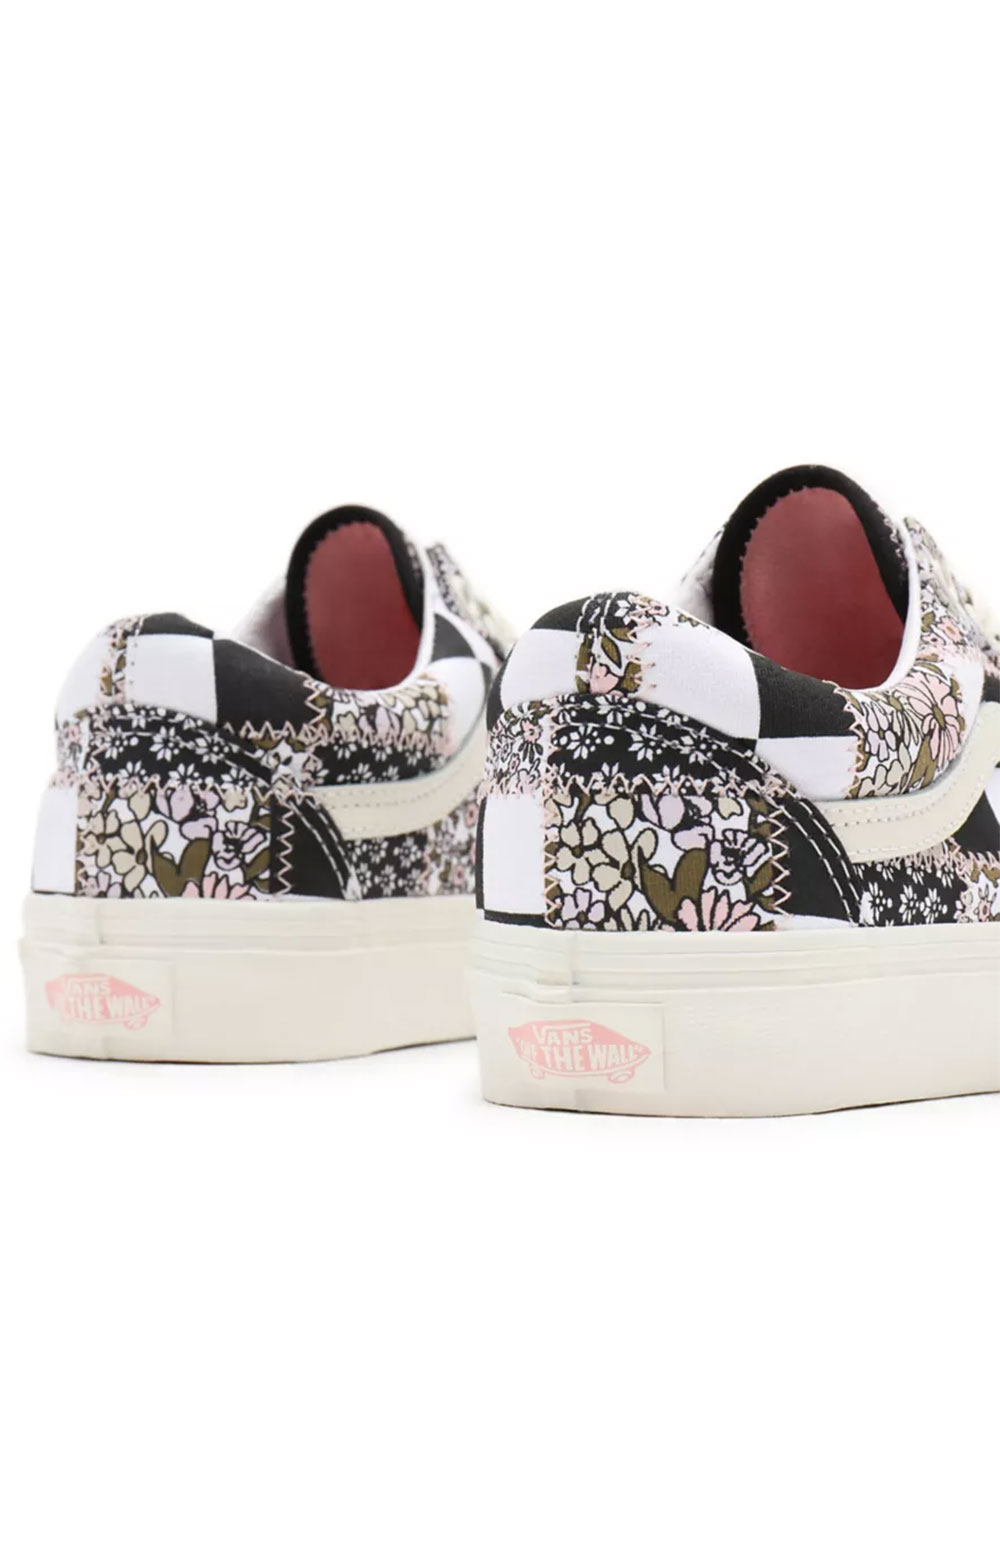 (8G19FY) Patchwork Floral Old Skool Shoes - Multi/Marshmallow  4